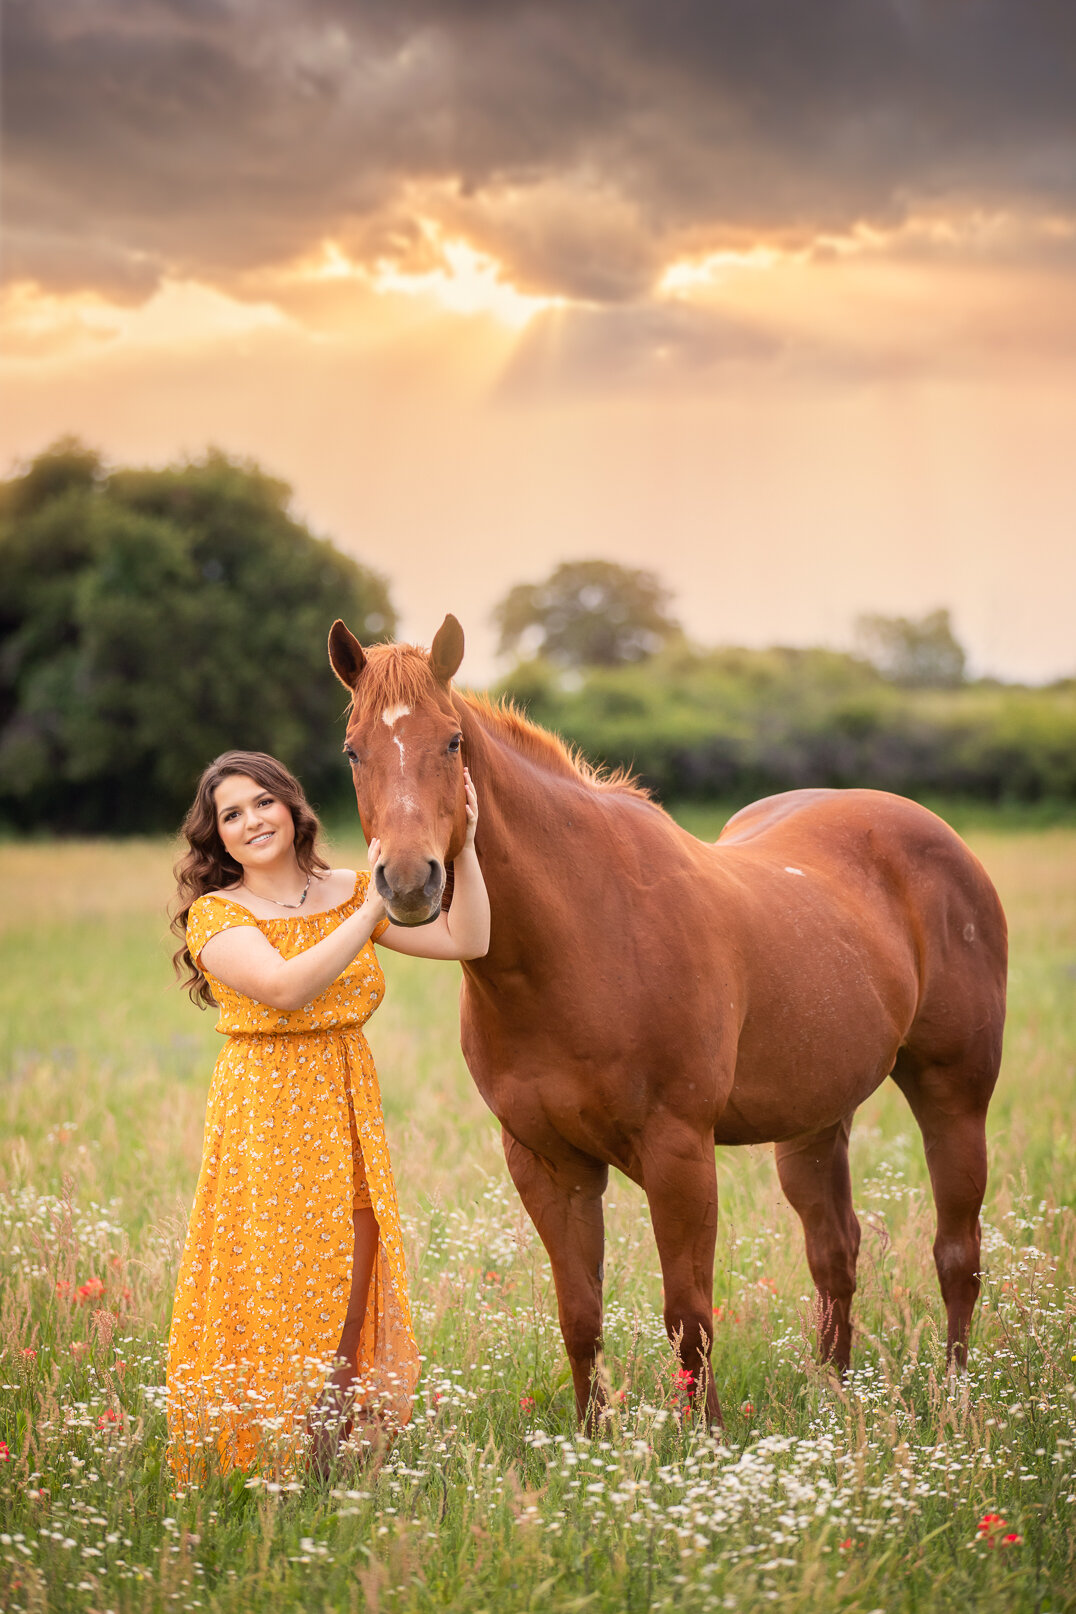 Senior Photography In Fort Worth Fort Worth Senior Photographer Equine Senior Portraits At Fort Worth Ranch Senior Family Child Photographer Southlake Tx